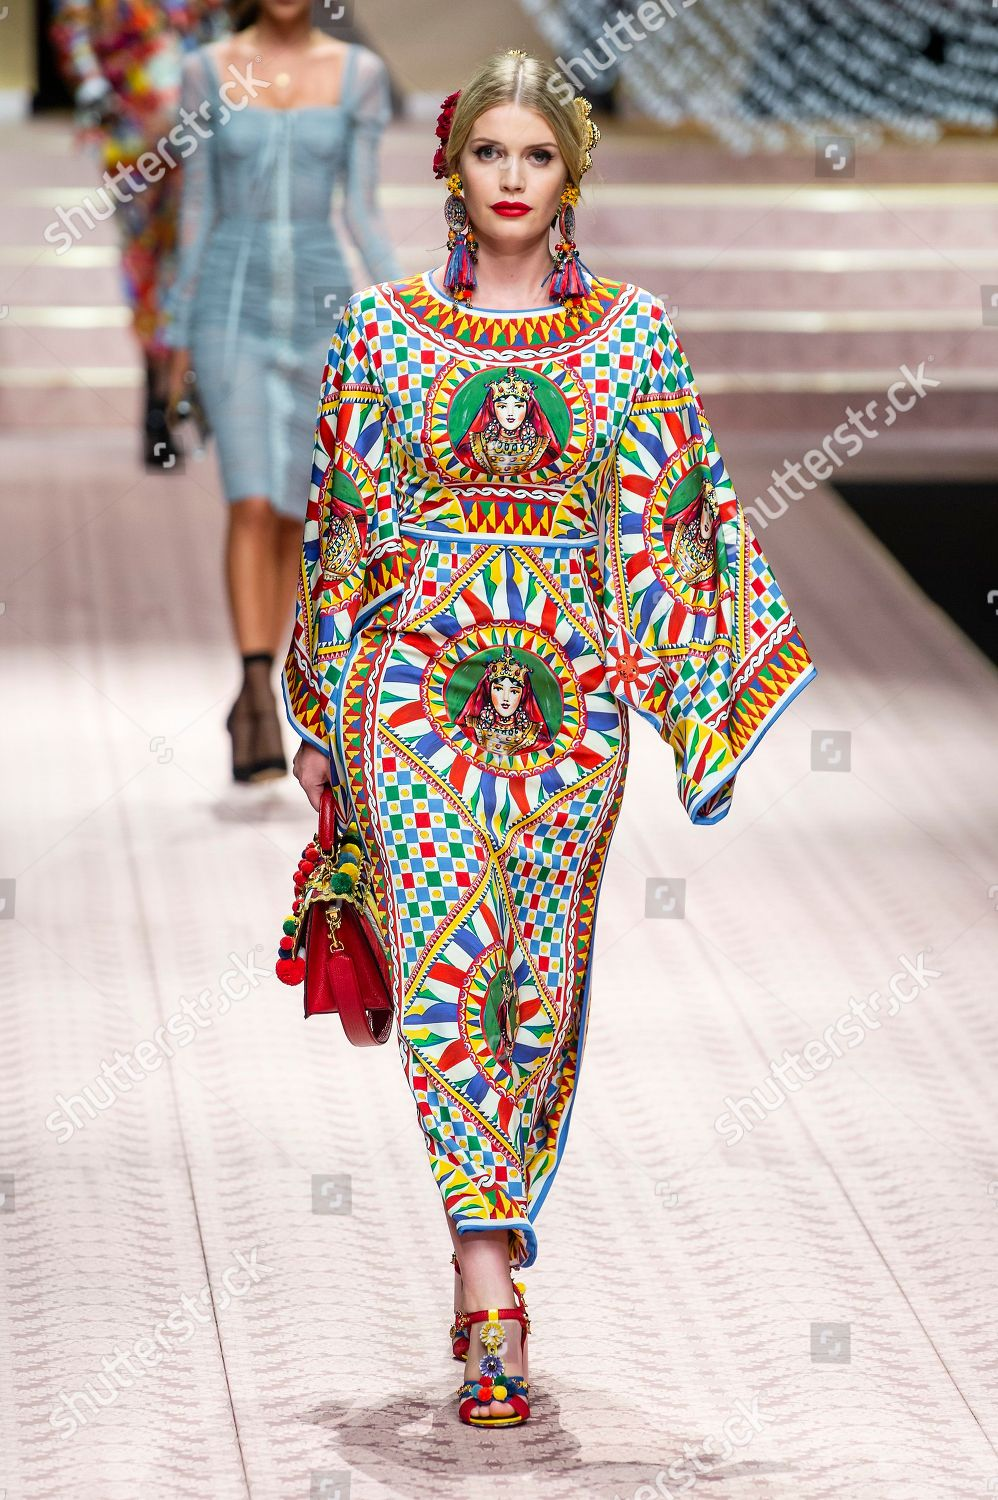 a3e56c8e Dolce & Gabbana show, Runway, Spring Summer 2019, Milan Fashion Week, Italy  Stock Image by Shutterstock for editorial use, Sep 23, 2018